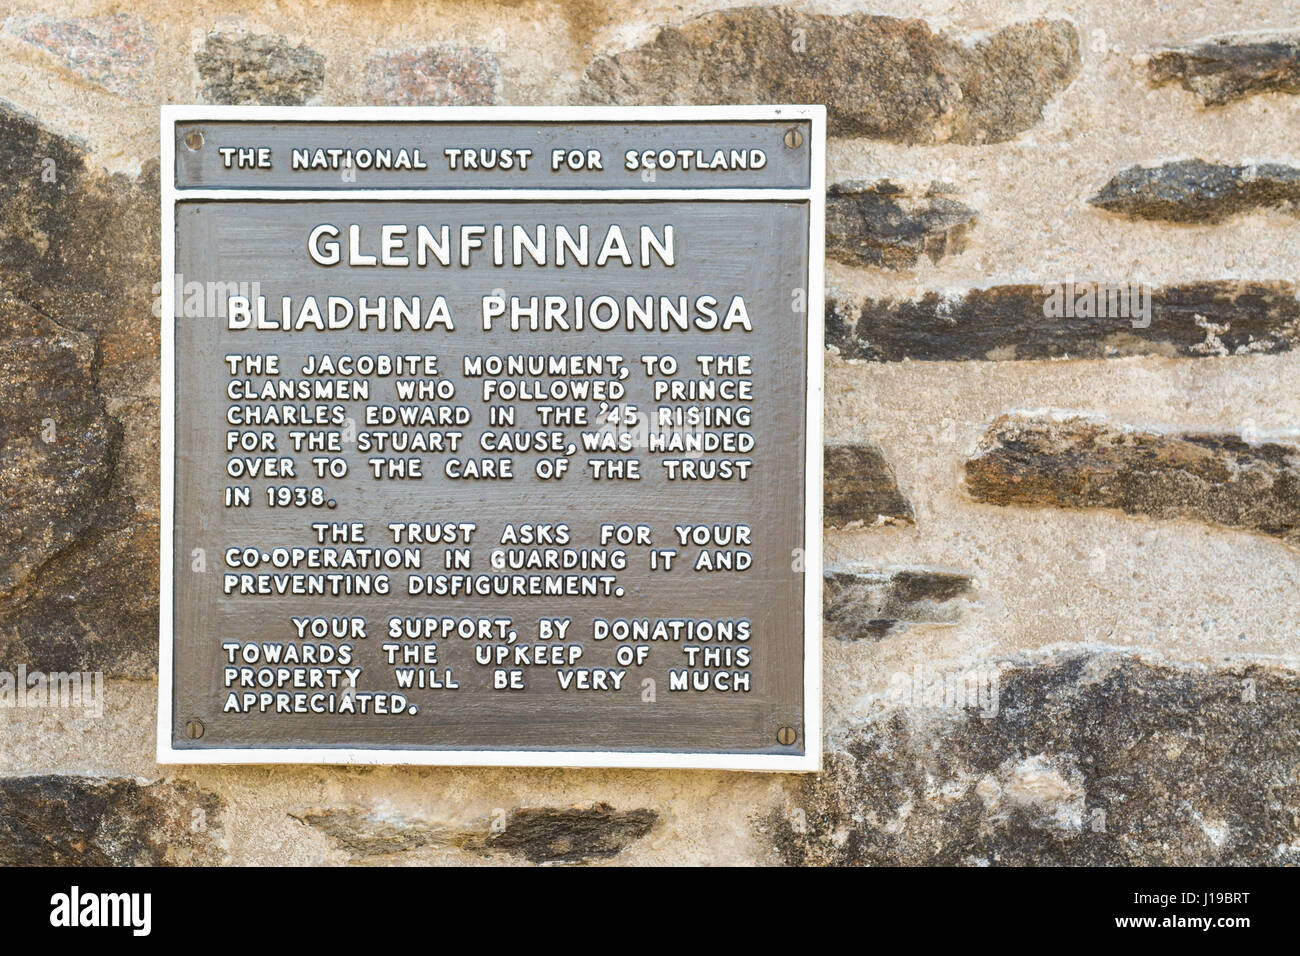 Glenfinnan Monument plaque sign - Stock Image